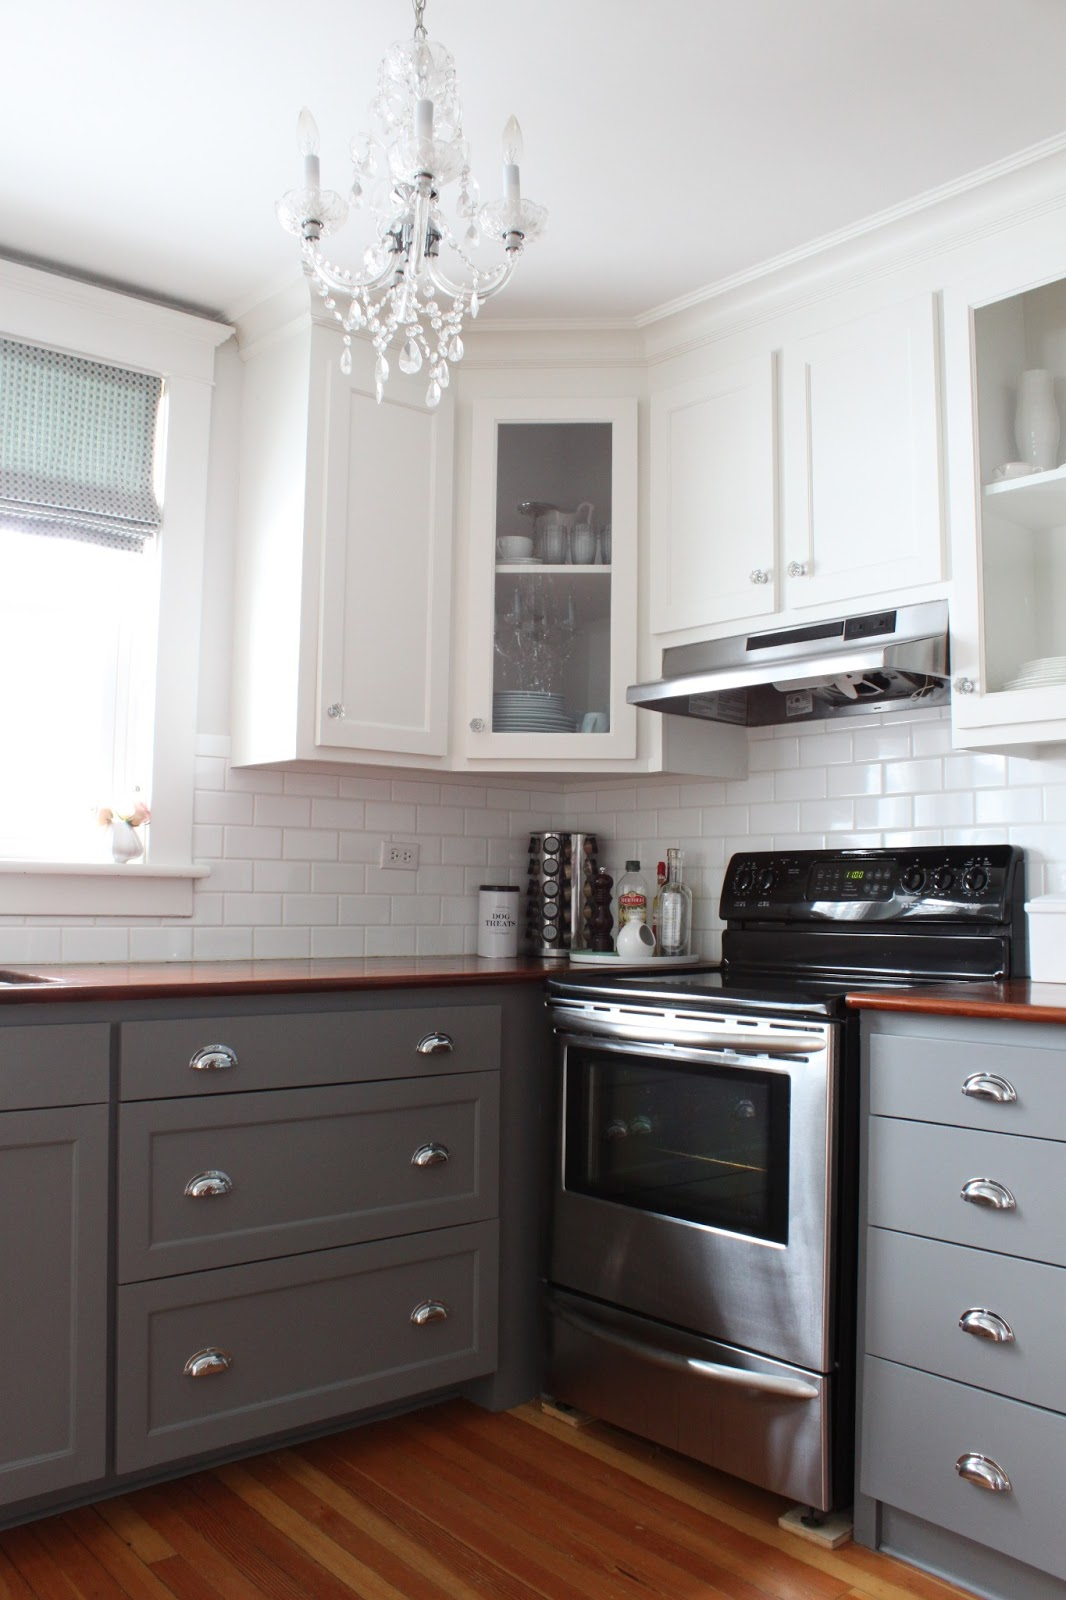 Extremely Awesome Two Tone Kitchen That Will Change Your Life For Sure